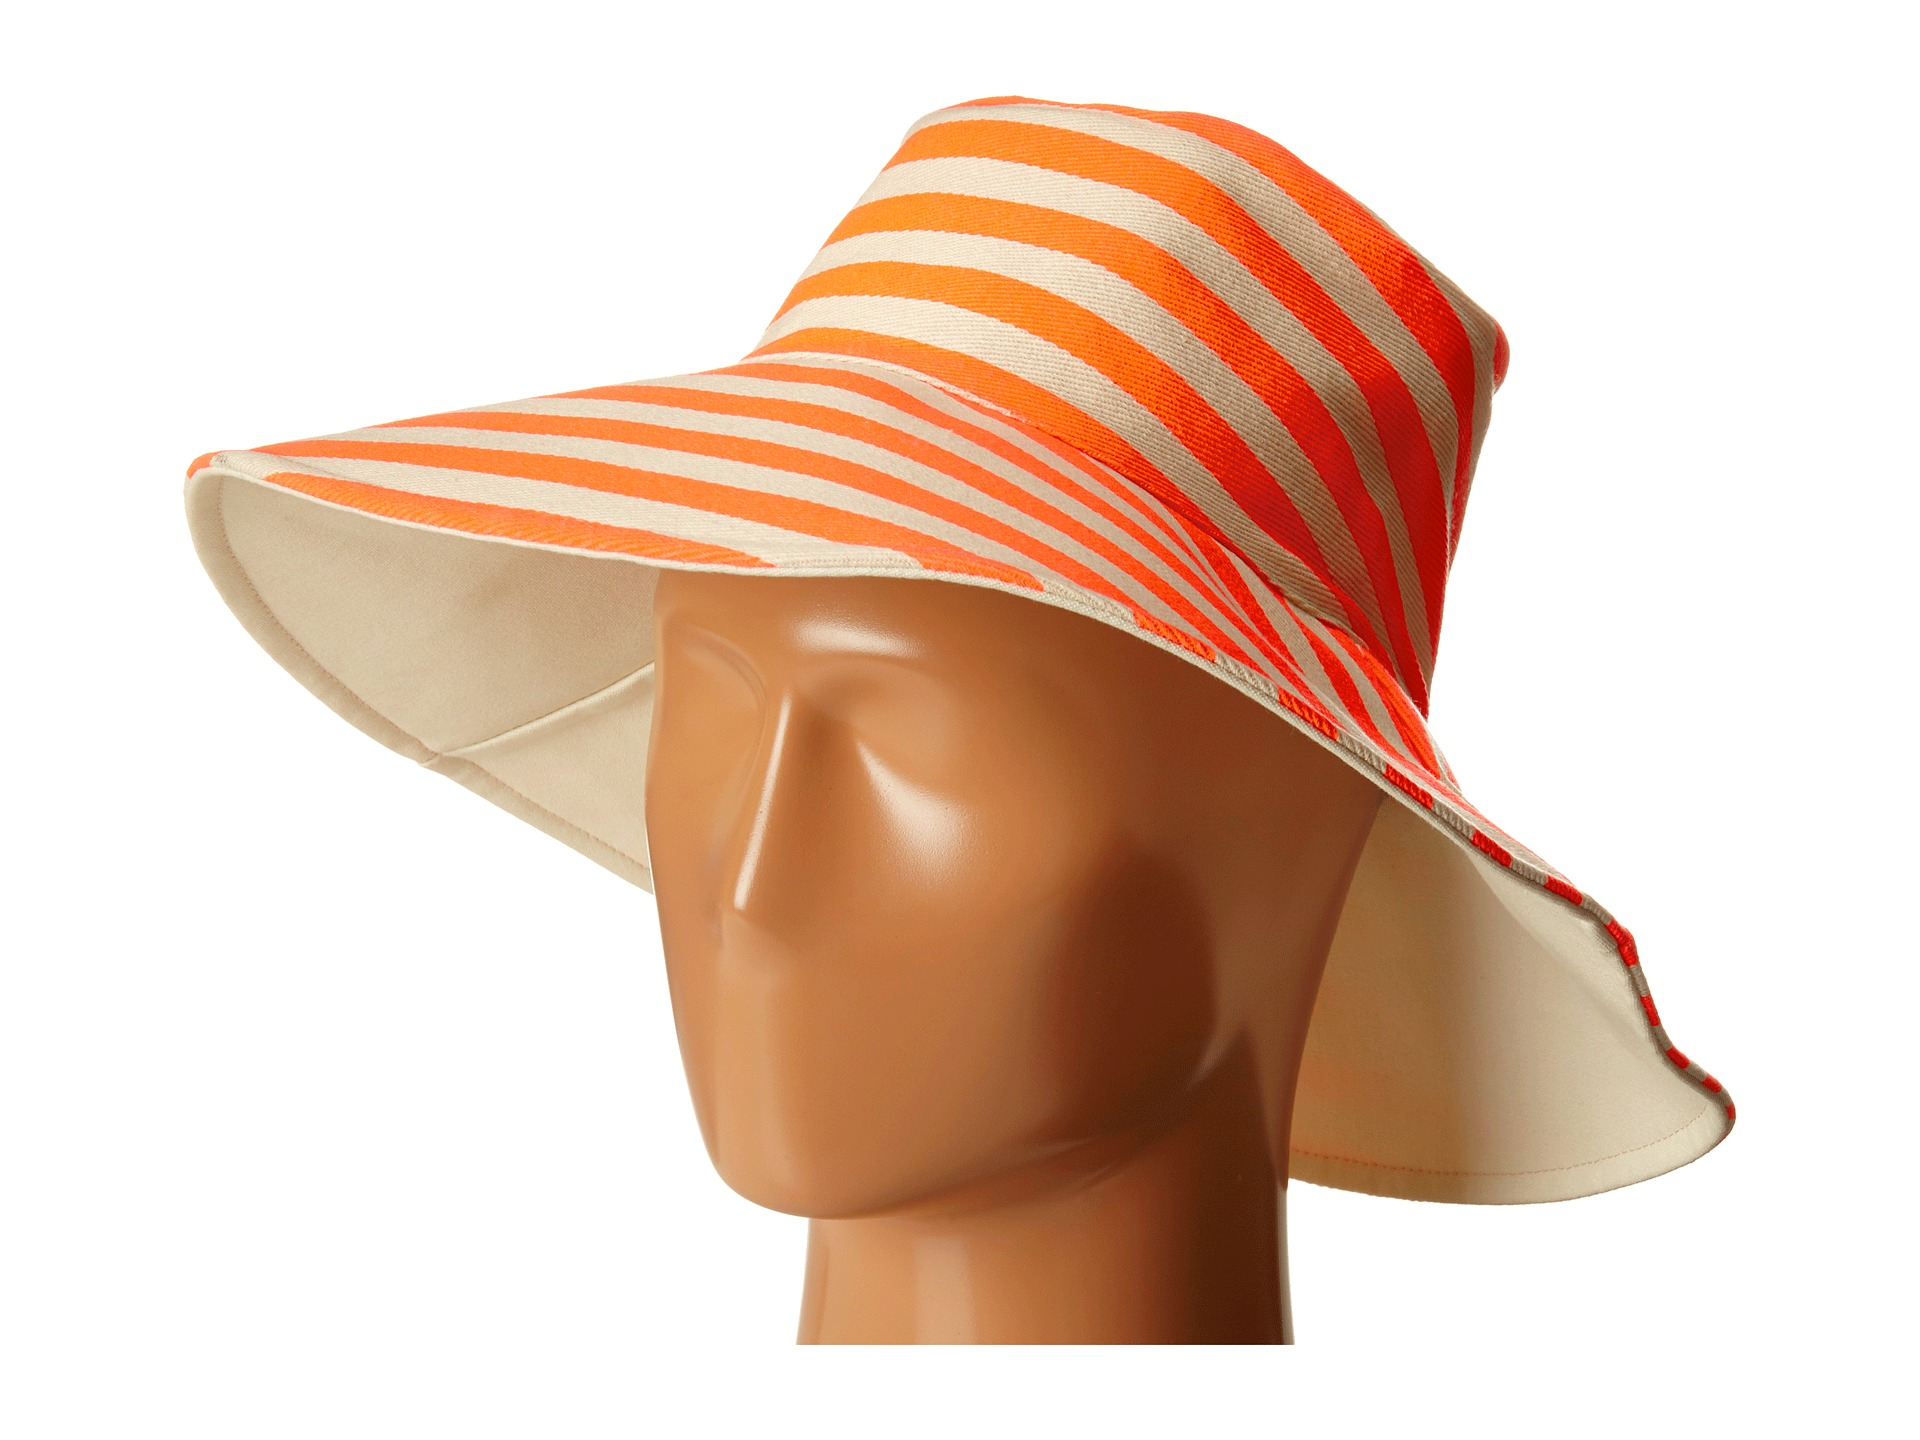 3b0b681bb8e Lyst - Hat Attack Canvas Reversible Sunhat in Orange